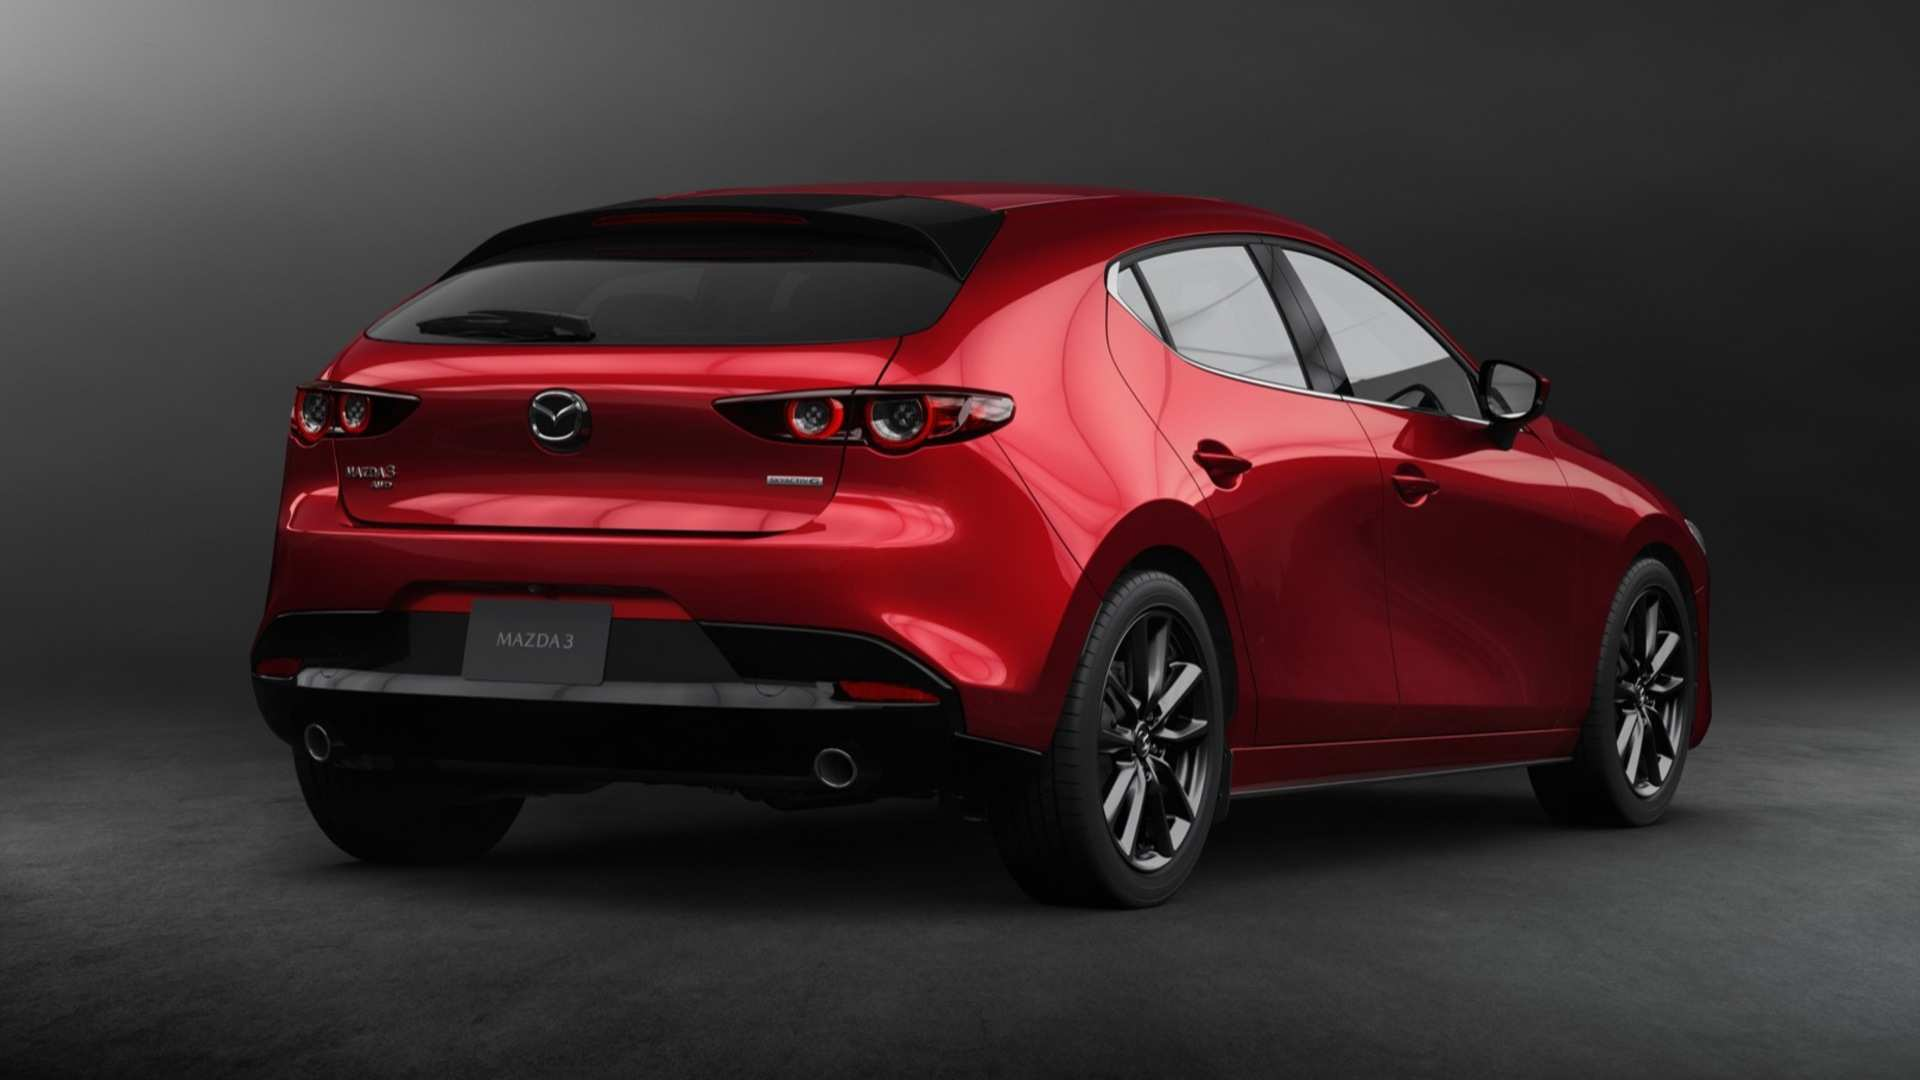 69 Gallery of 2019 Mazda 3 Turbo Engine for 2019 Mazda 3 Turbo